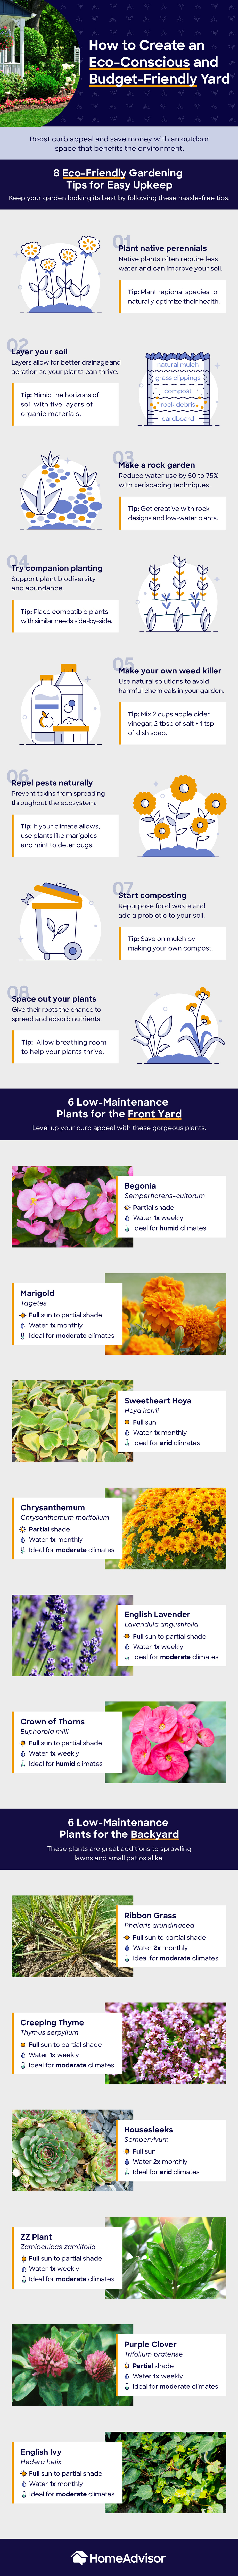 infographic on creating an eco-friendly landscape